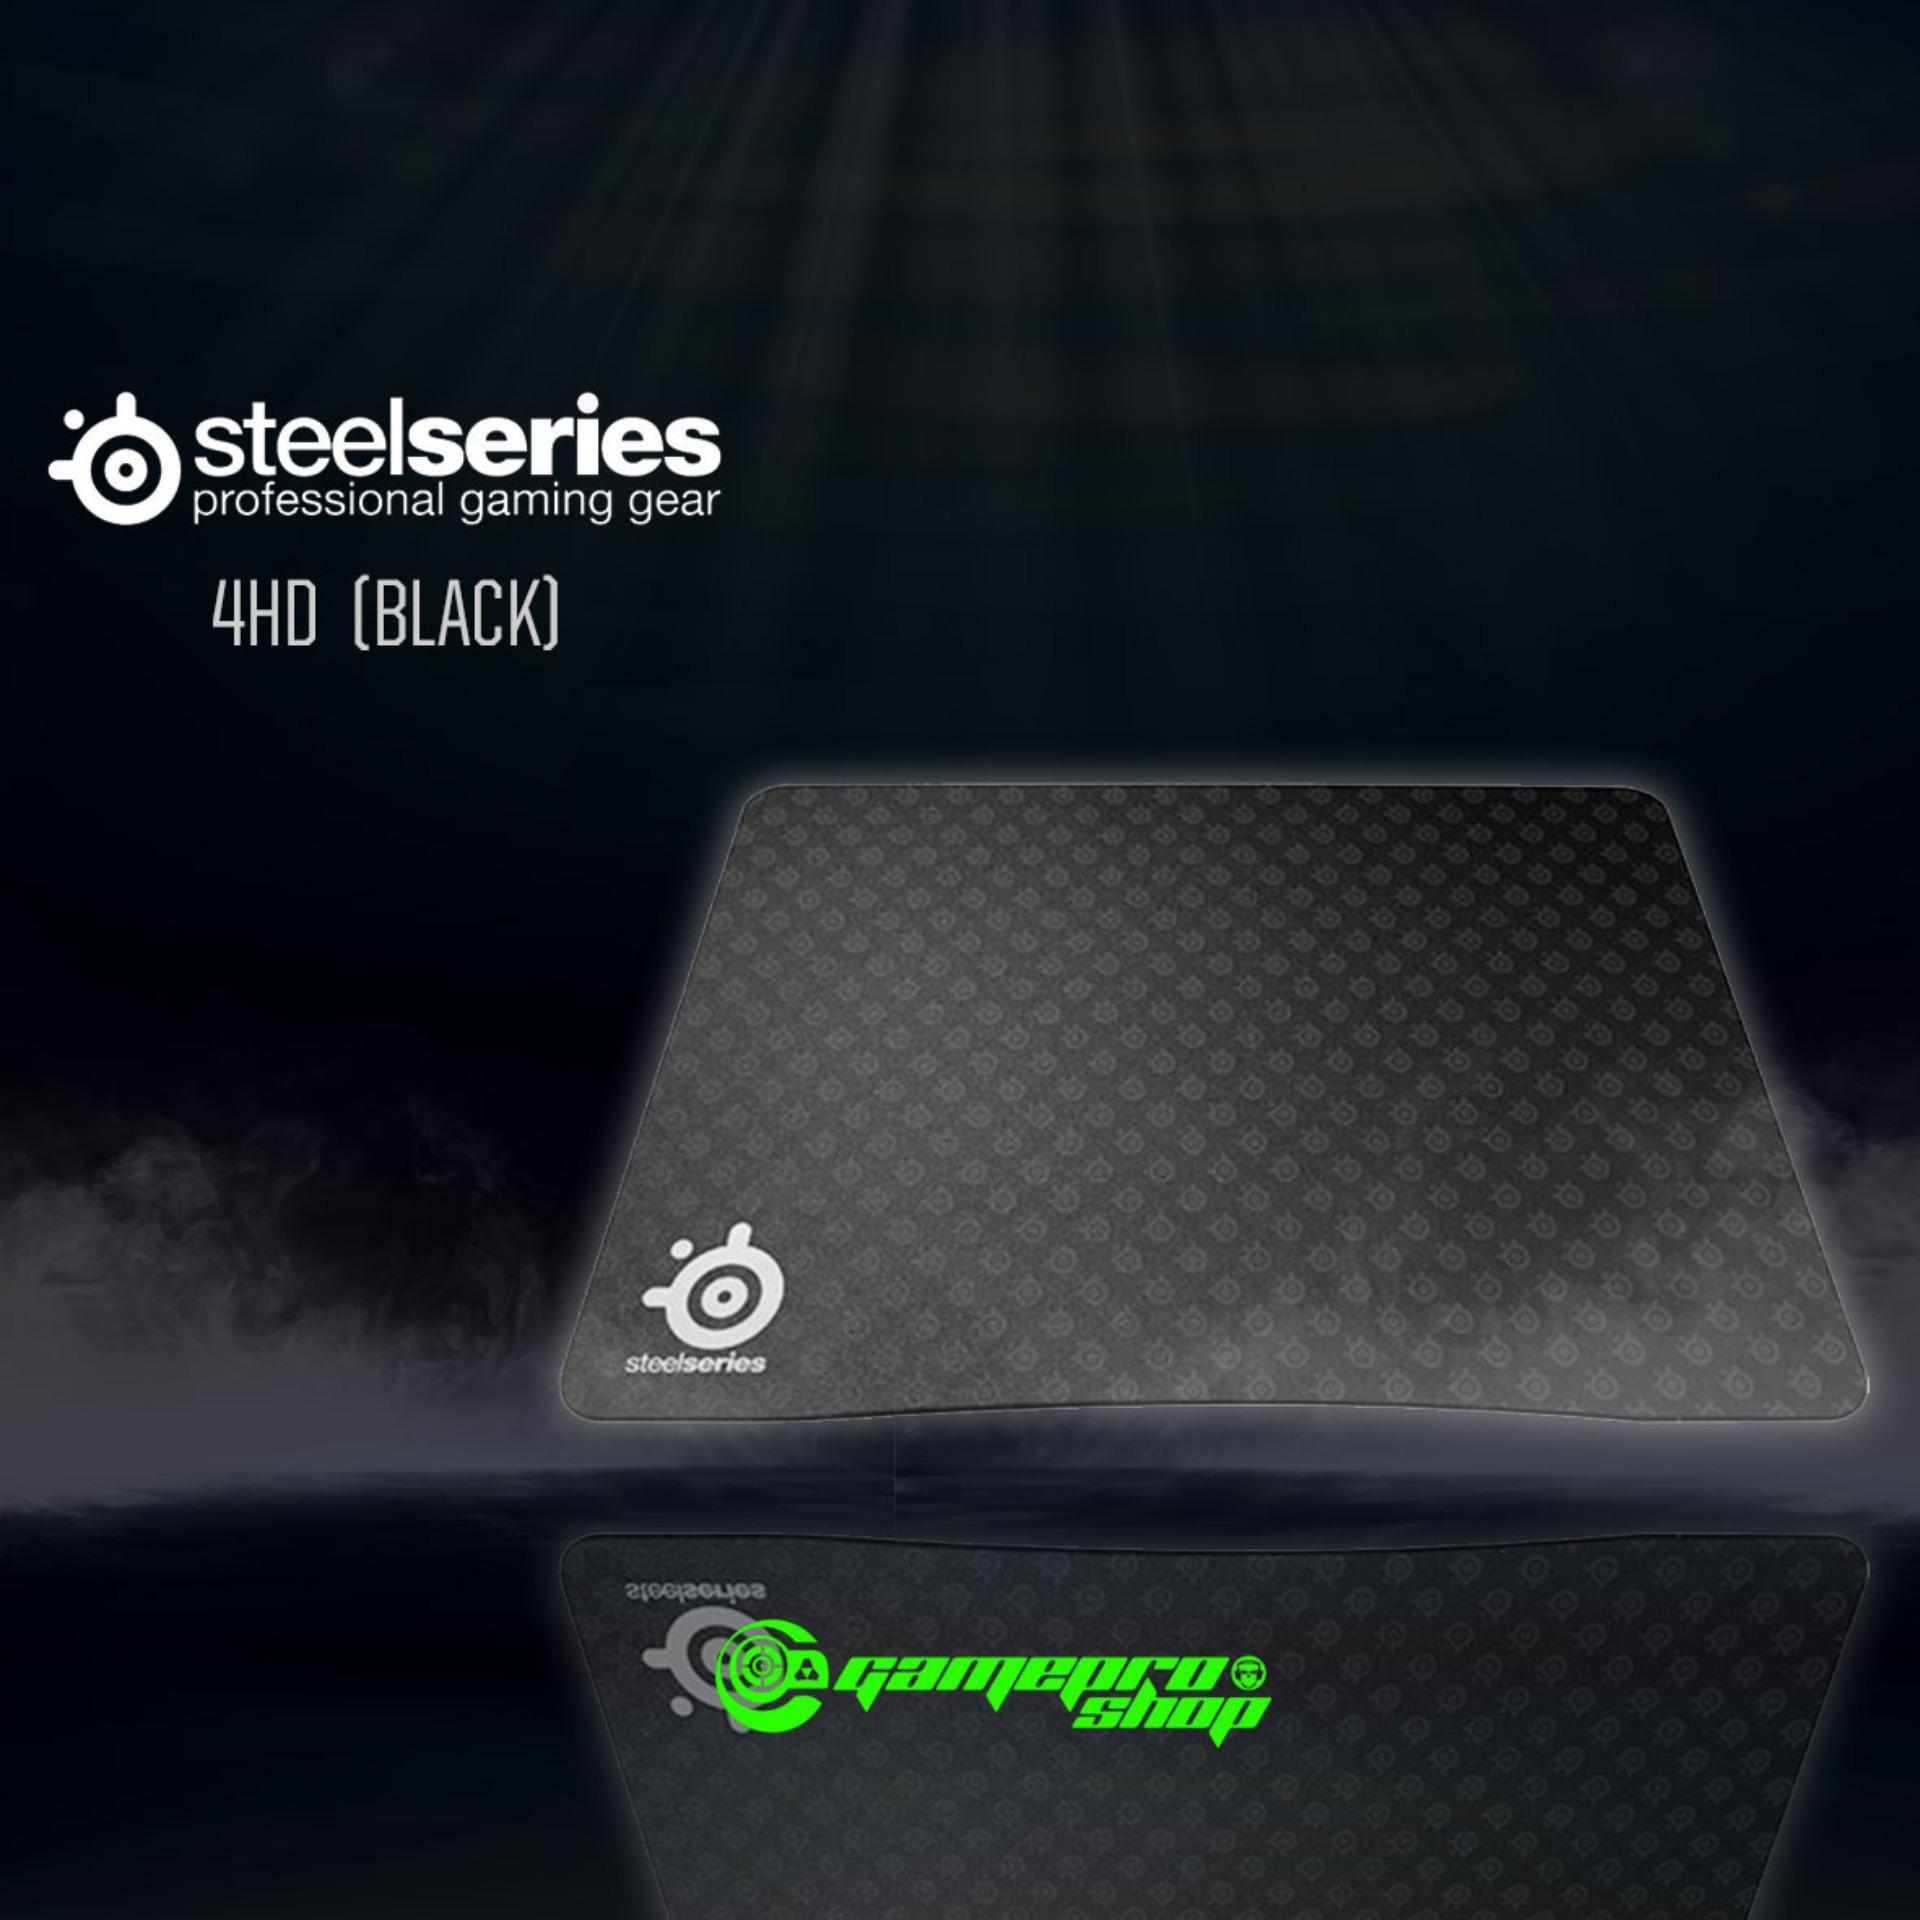 Steelseries 4Hd Gaming Mouse Pad Black Gss Promo On Singapore